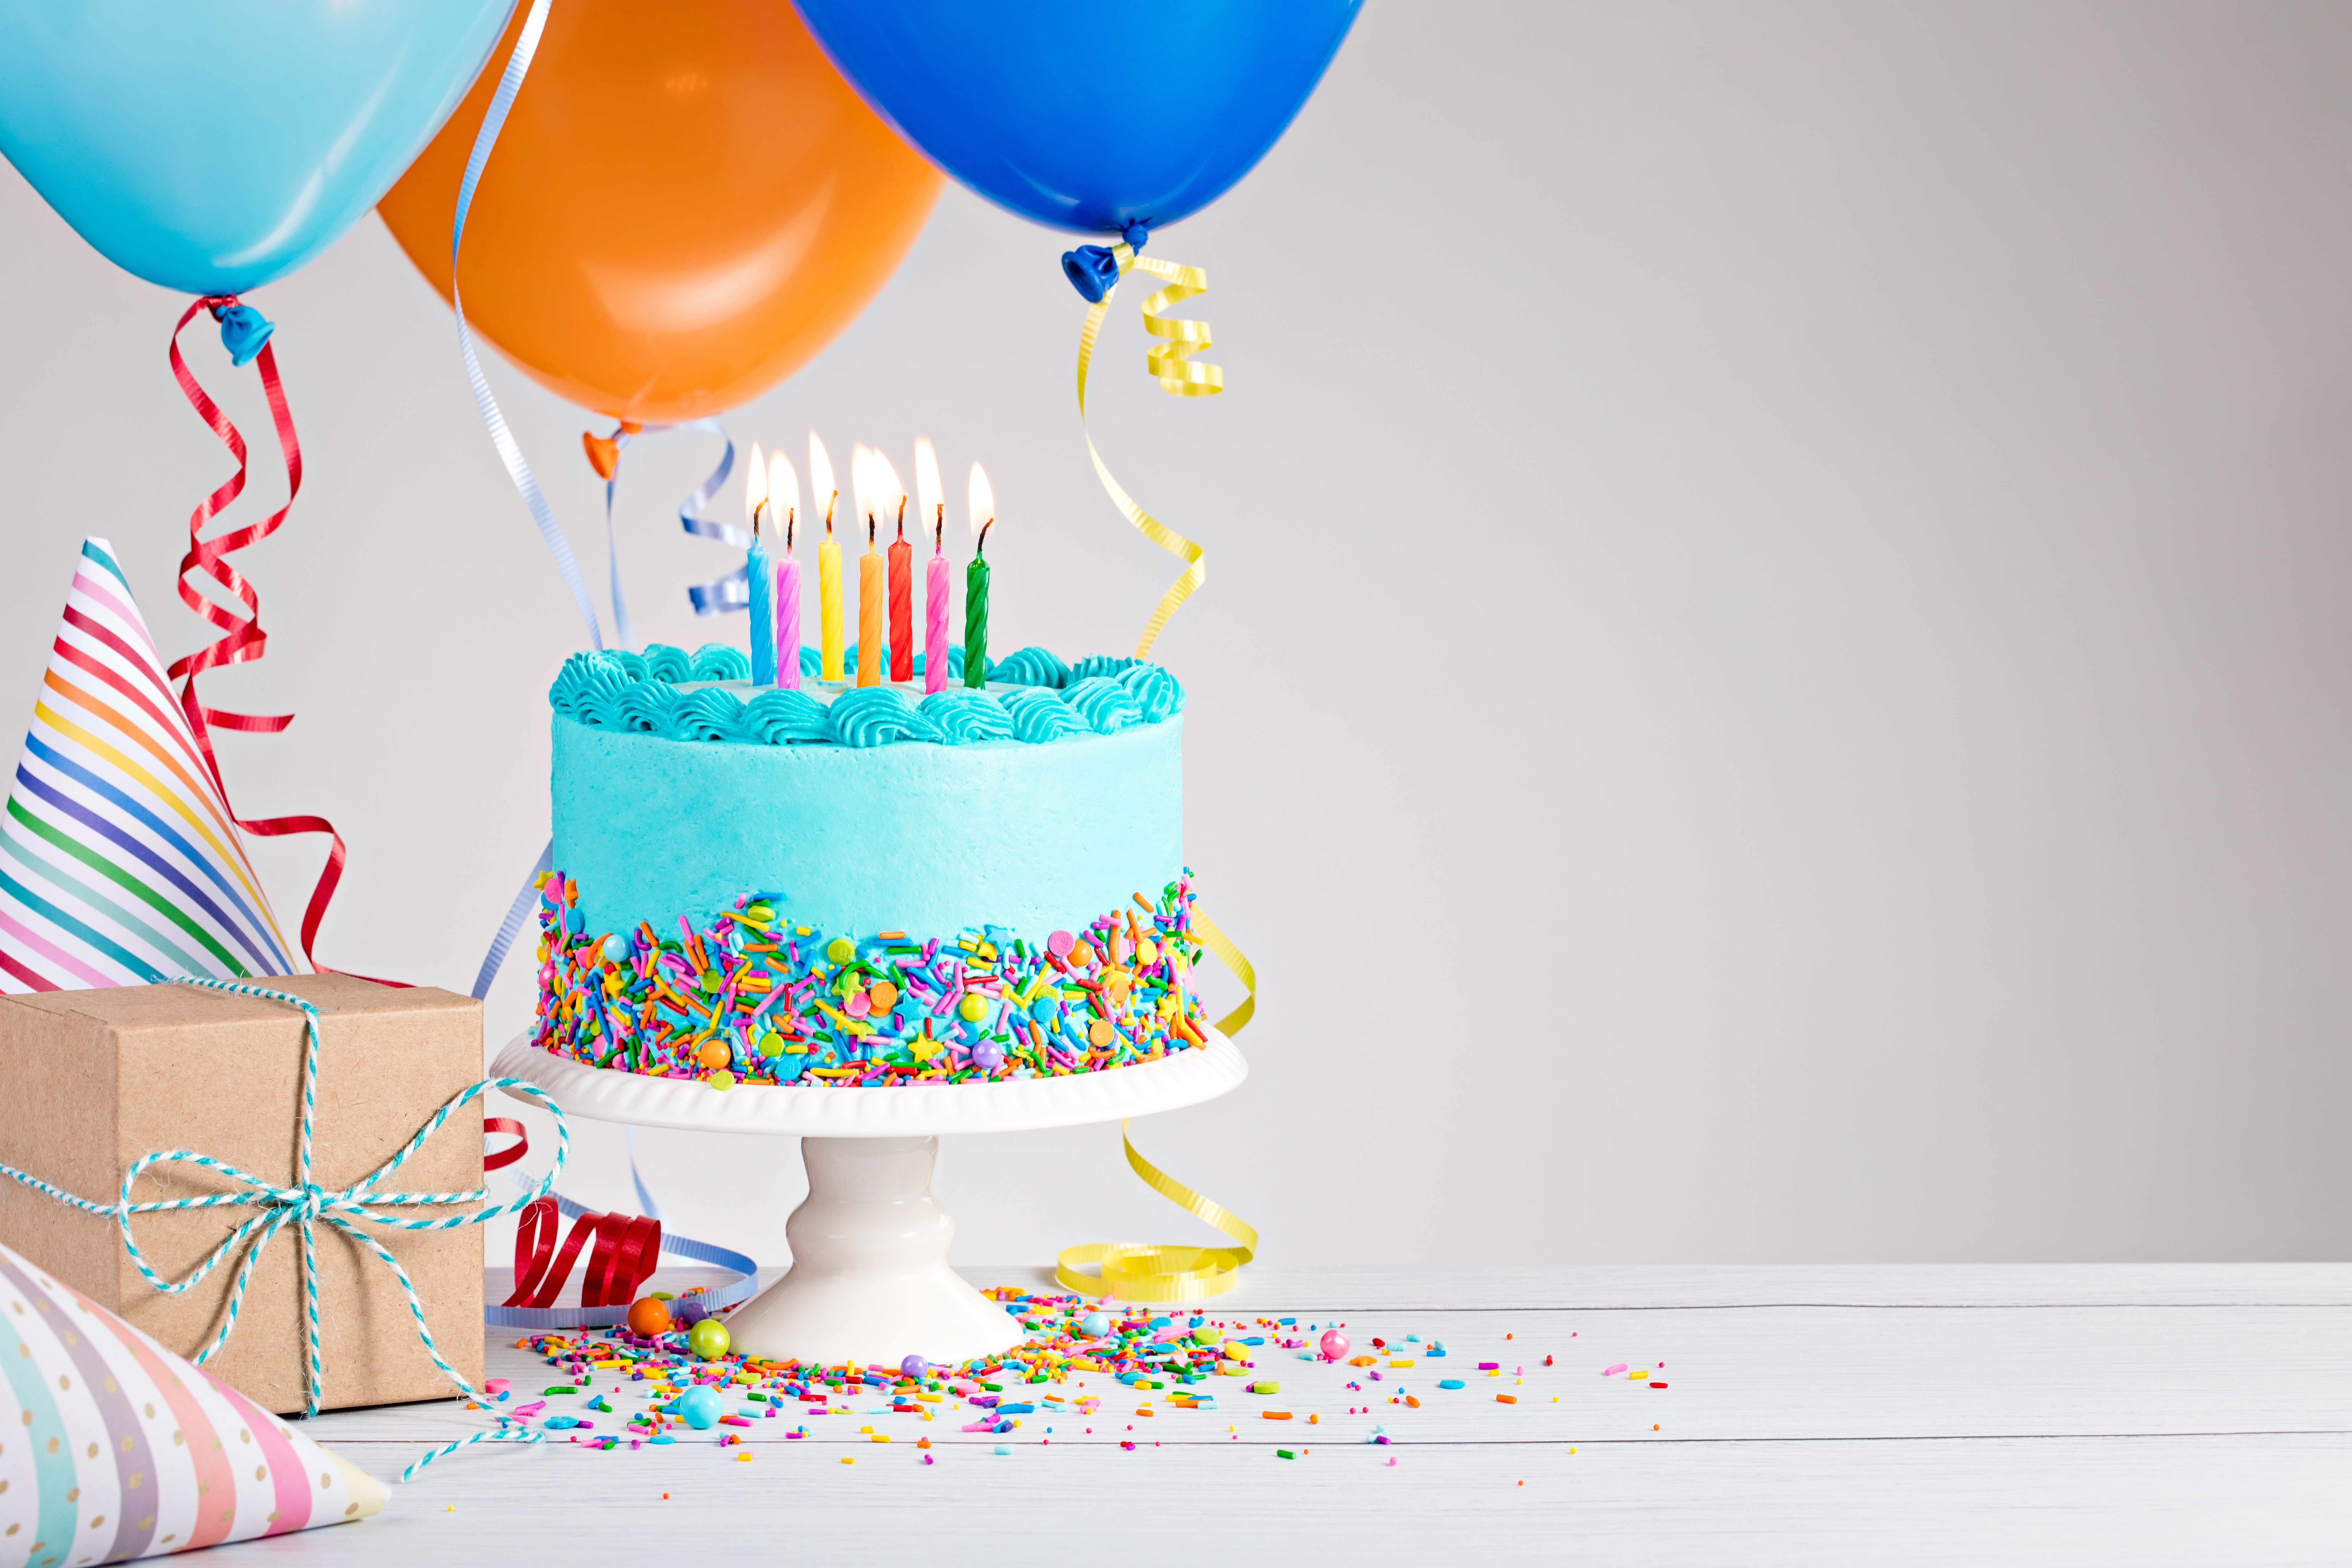 Best ideas about Birthday Cake Wallpaper . Save or Pin Wallpaper birthday cake receipt 8k Holidays Now.